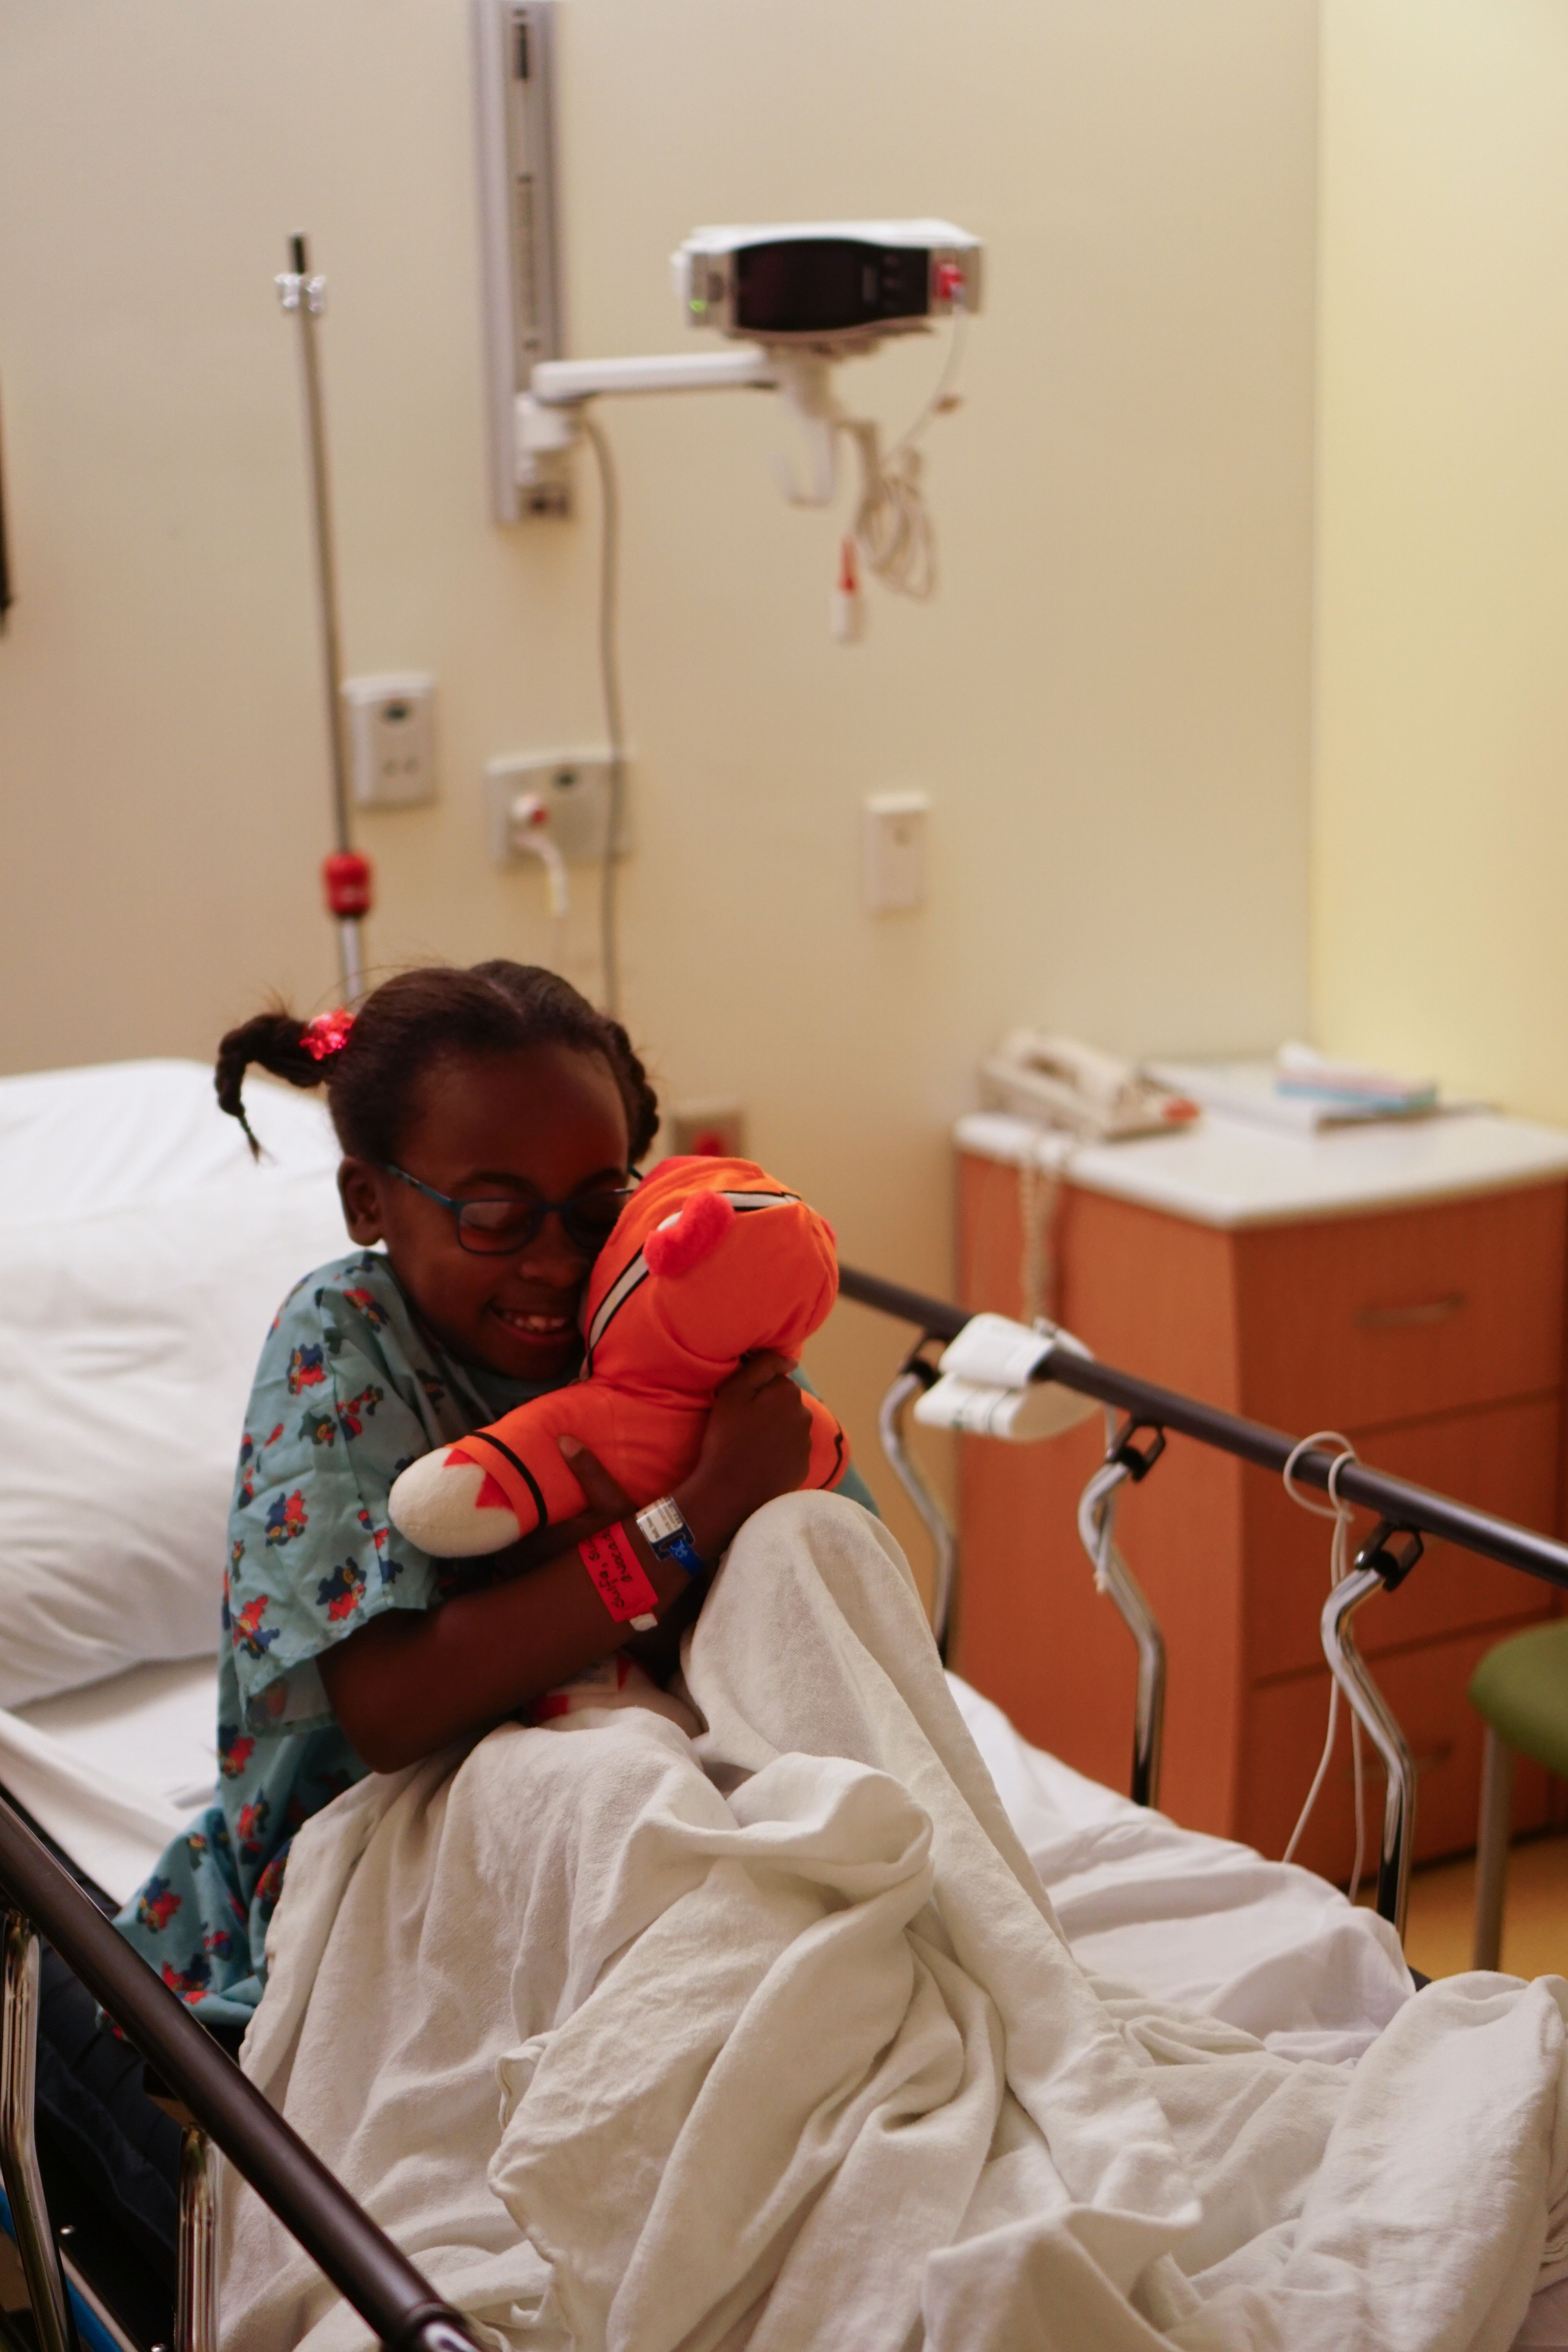 """""""Sumaya and her stuffed animal, Zack, make the perfect team. When Sumaya needed an endoscopy, Zack was by her side to bring h"""